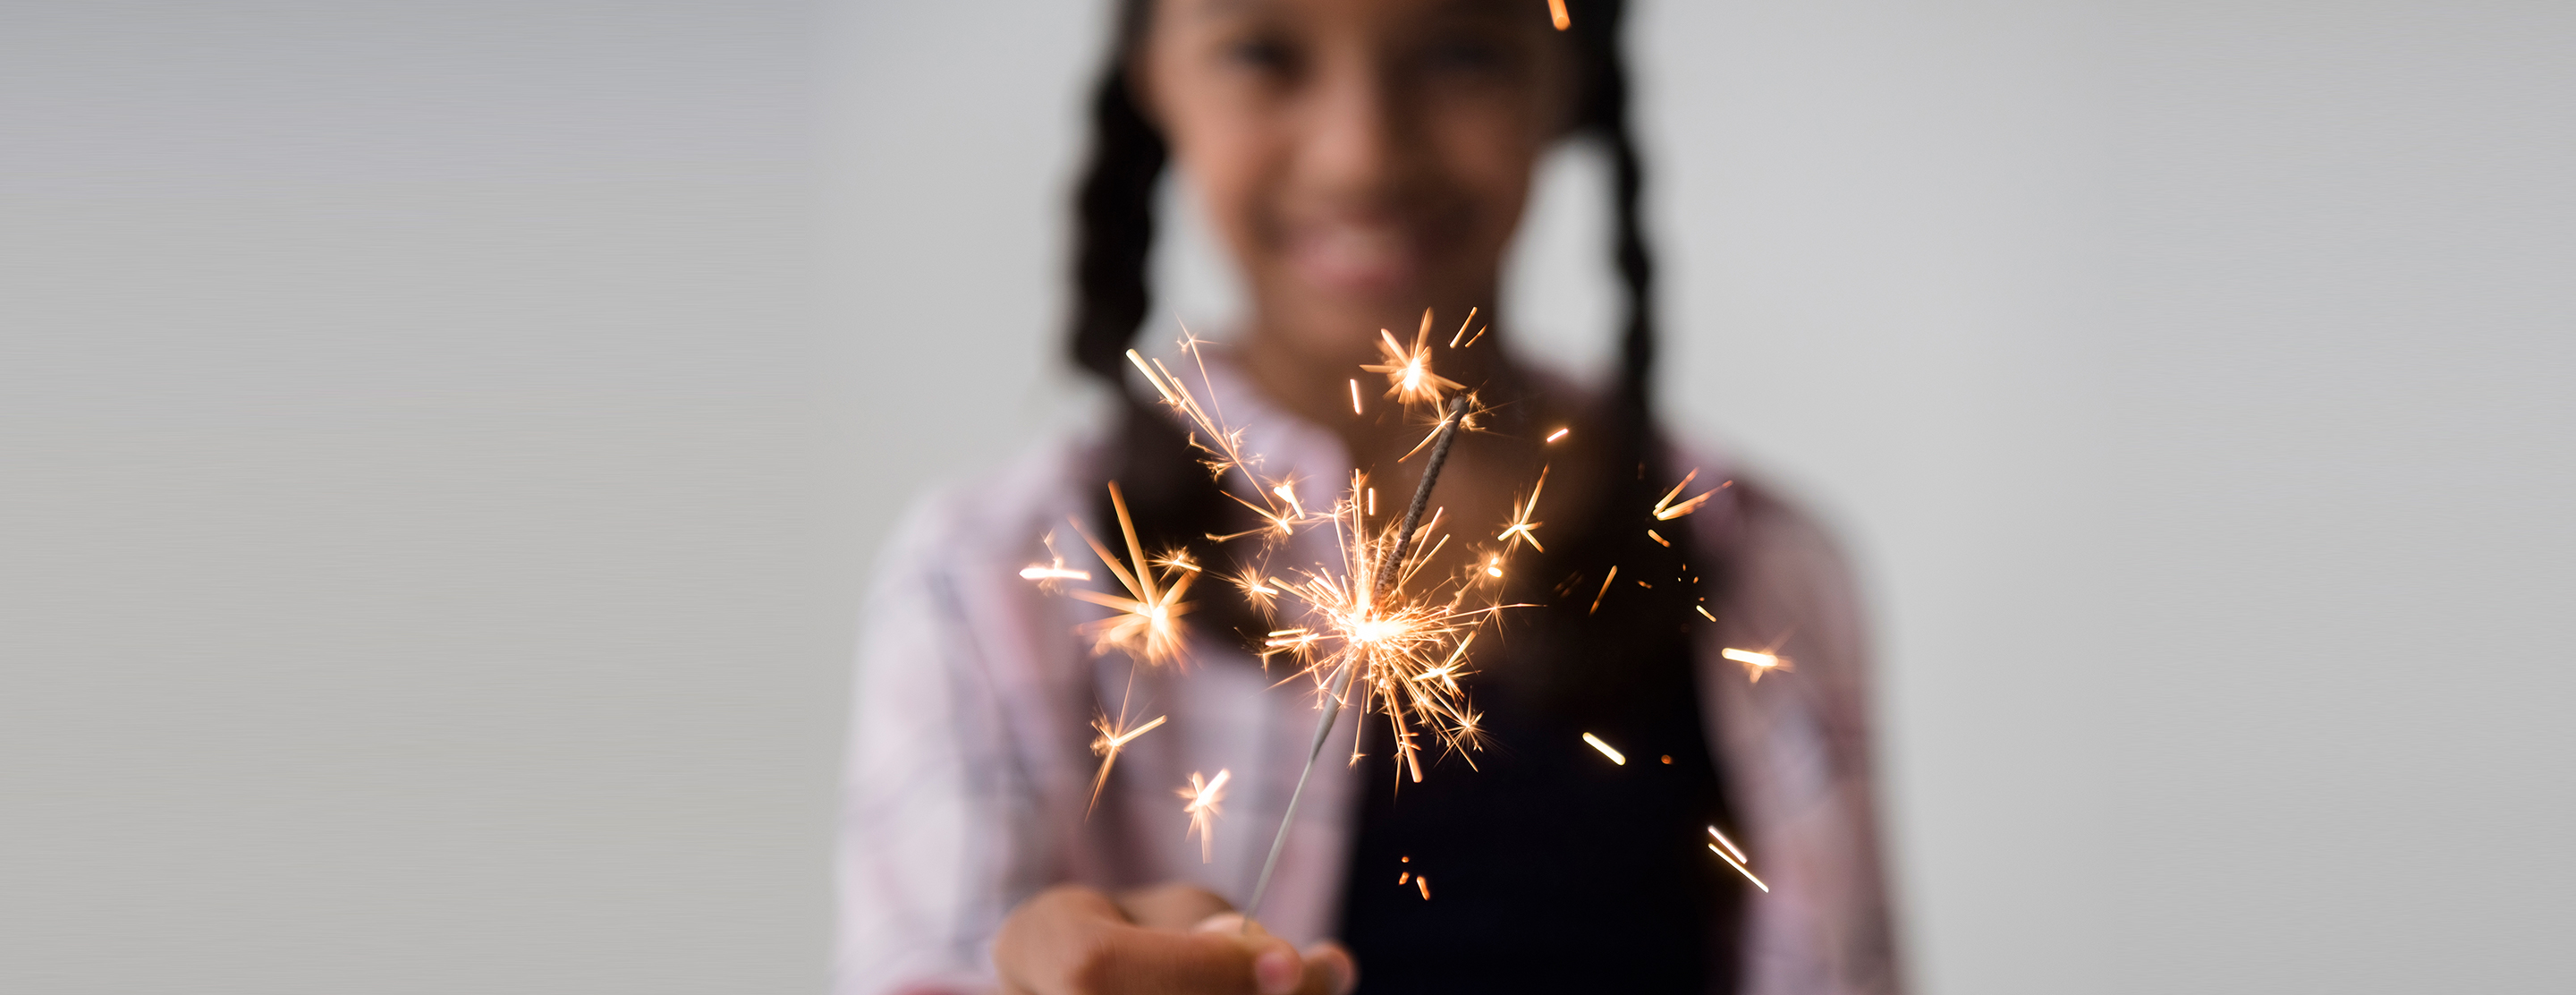 fireworks-safety-tips-for-parents-2x